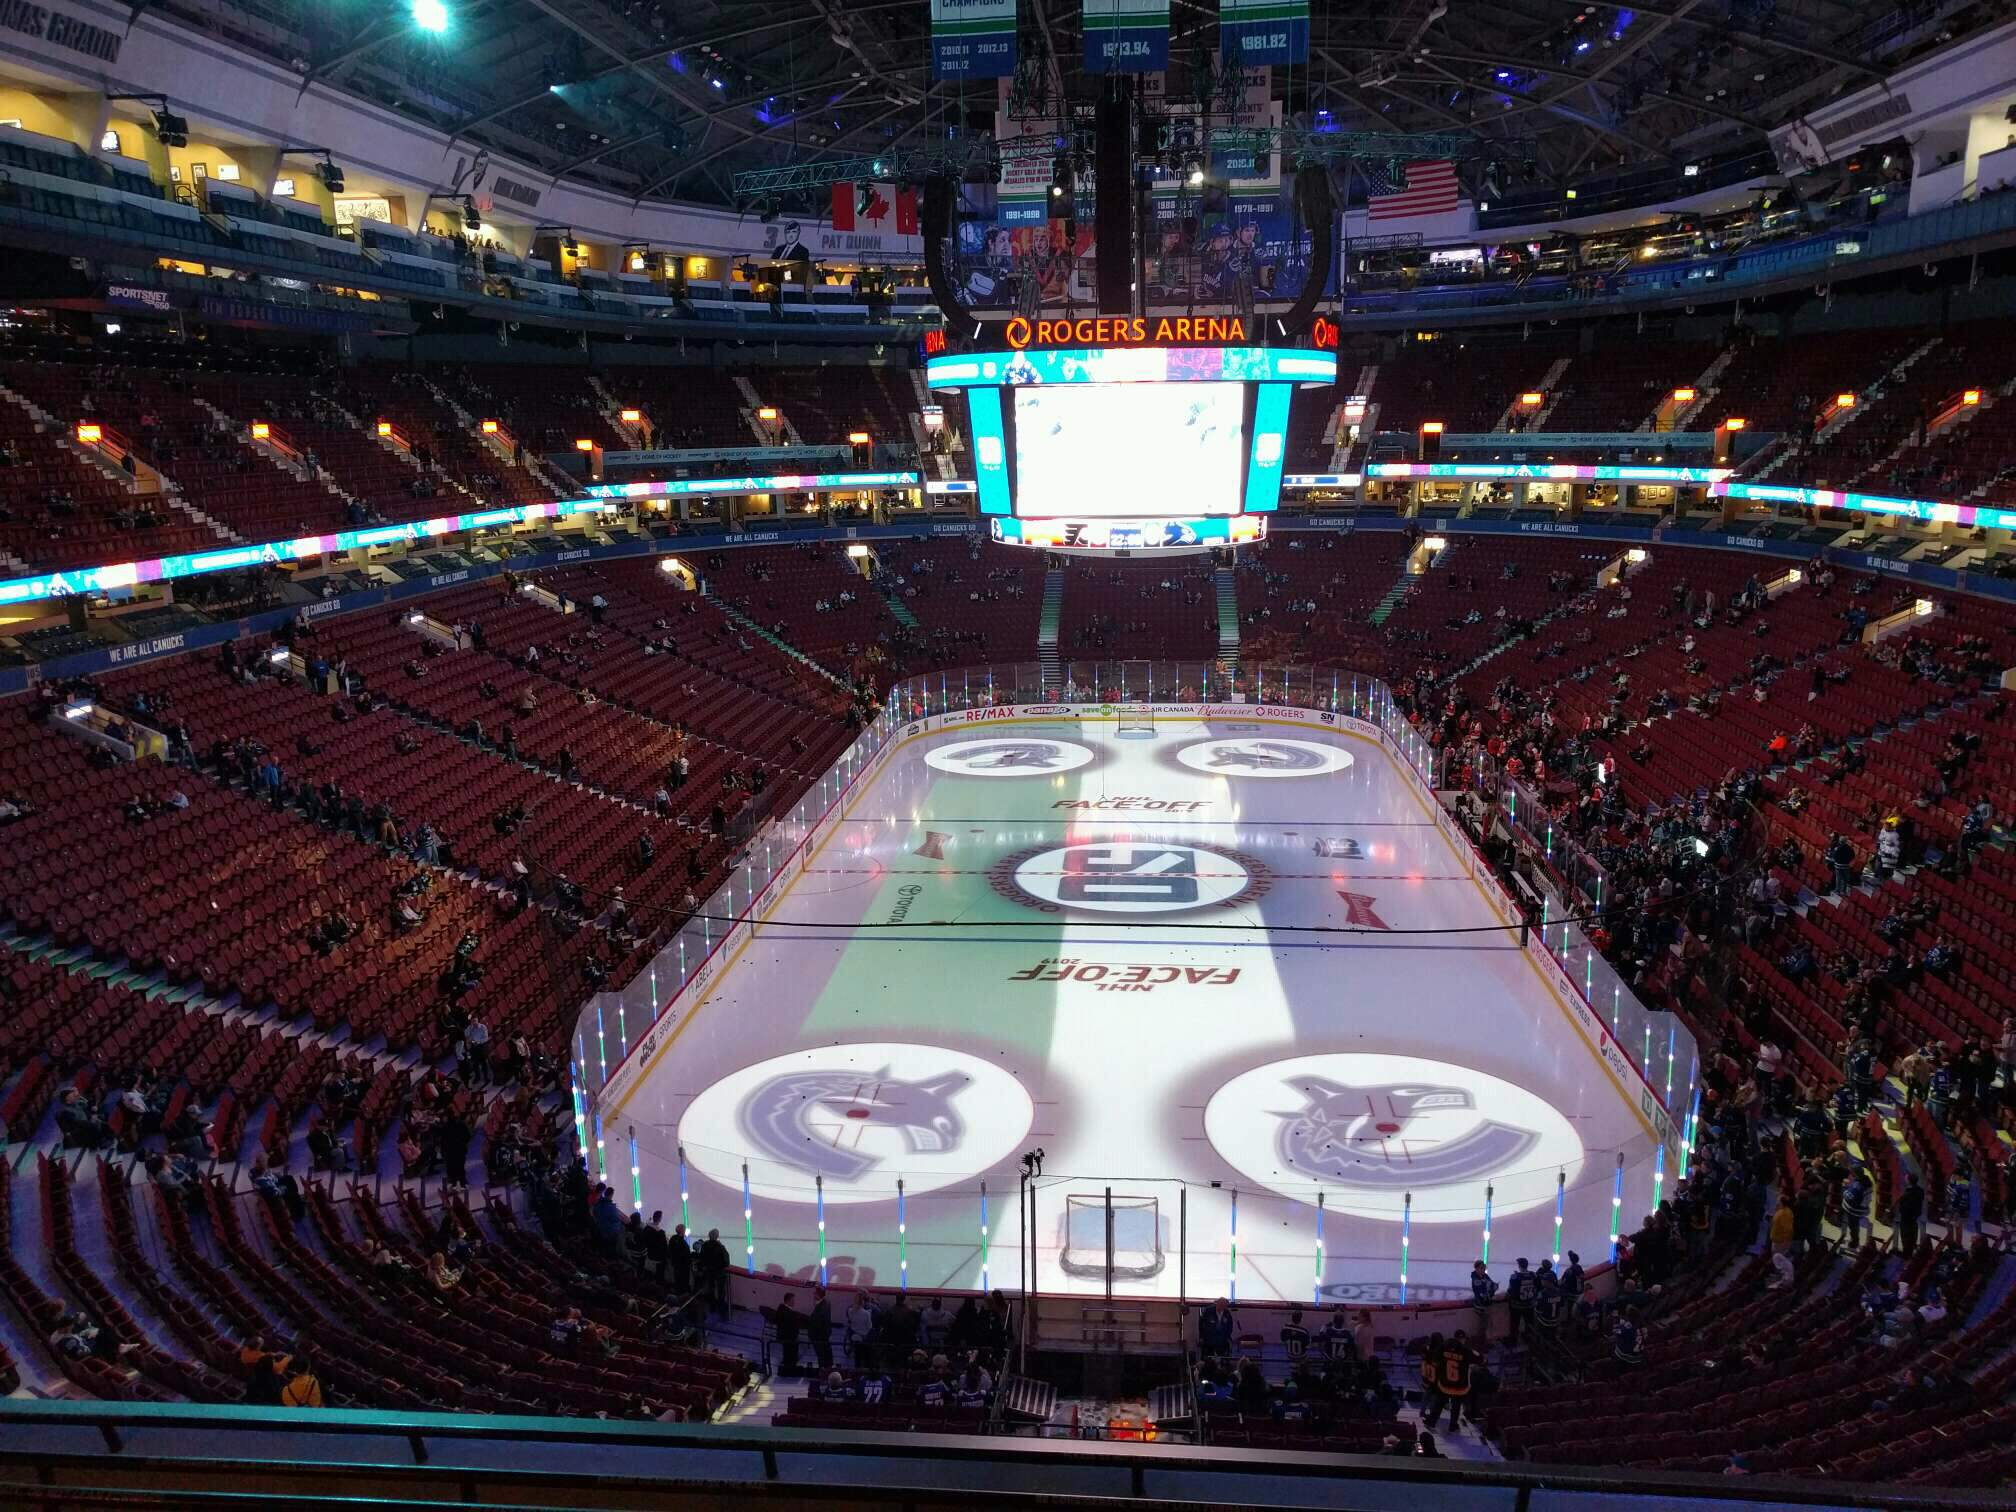 Rogers Arena Section 330 Row 7 Seat 106